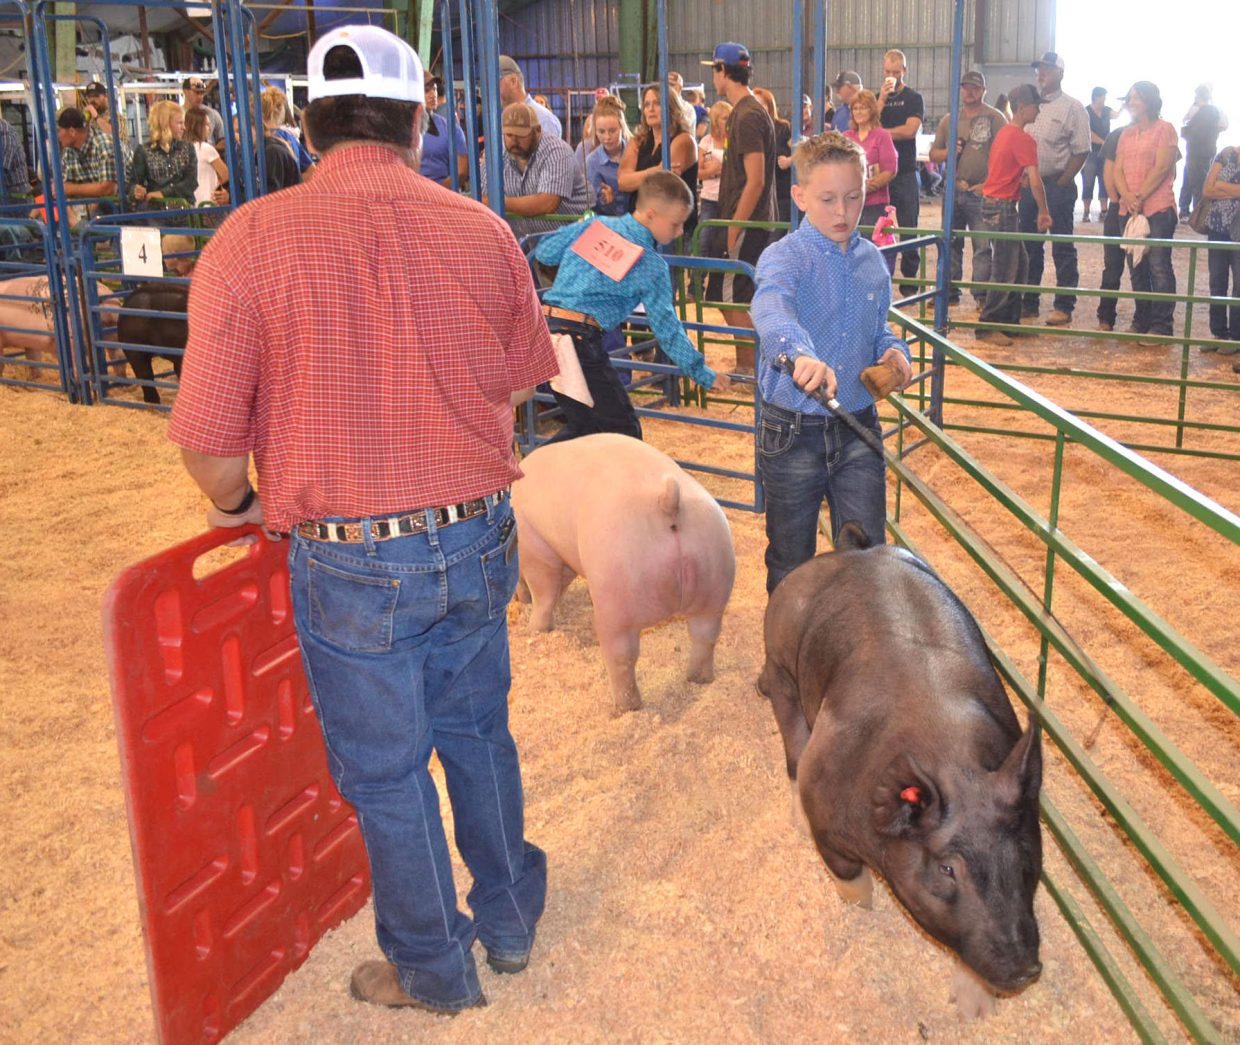 Klayton Baker maneuvers his swine around the ring during the junior showmanship division of the swine show at the Moffat County Fair on Friday.